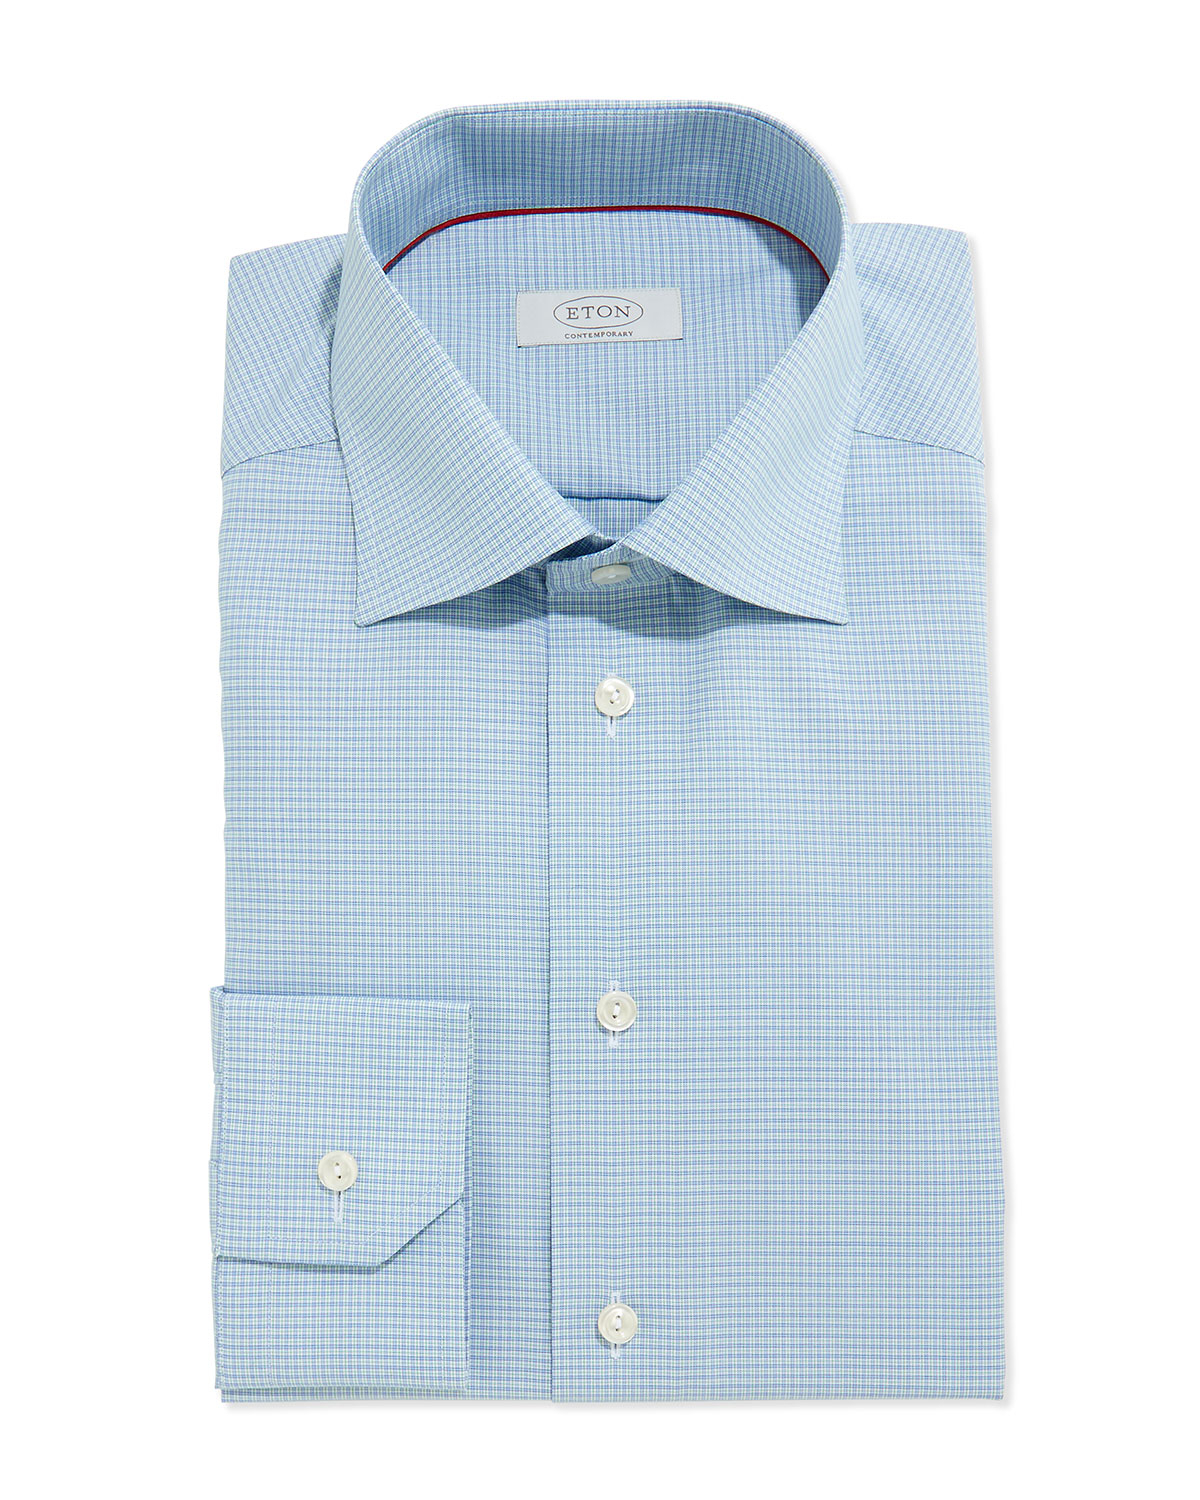 Lyst eton of sweden small check dress shirt in blue for men for Blue check dress shirt